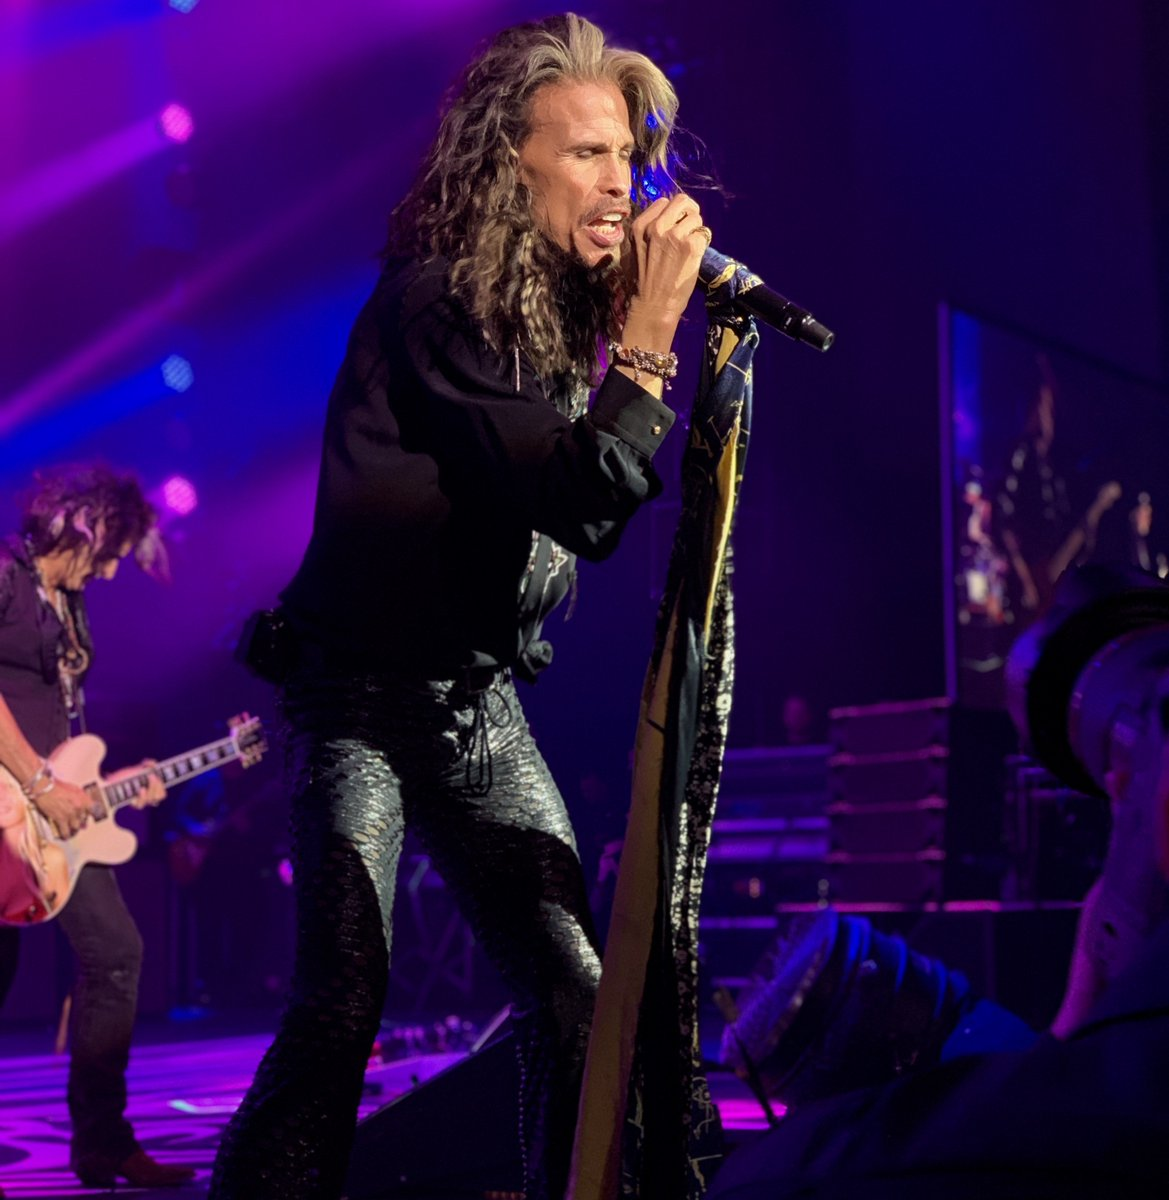 Thank you to all who took part in the second annual Viewing Party to celebrate the GRAMMY Awards®! We are especially grateful to our founder, @IamStevenT, and @aerosmith for their unwavering dedication to helping brave and courageous girls heal. #JamForJanie<br>http://pic.twitter.com/5JWYOjICkf